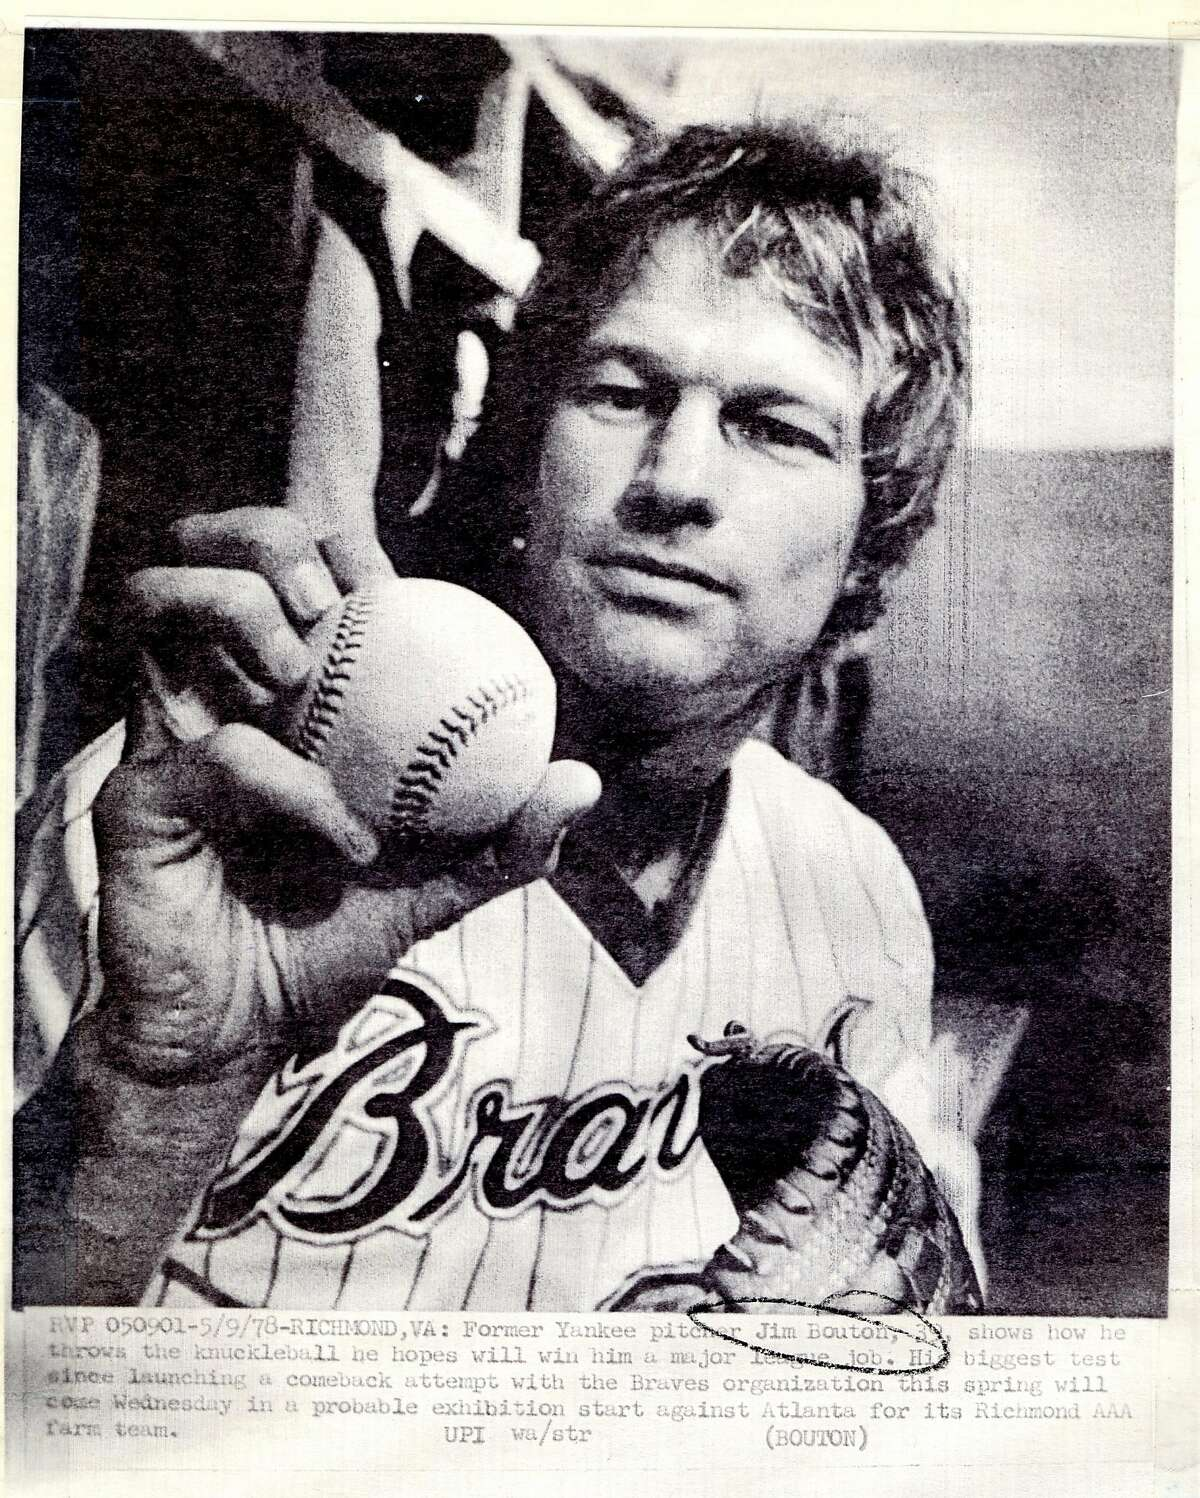 Jim Bouton shows off his knuckleball grip in a last-ditch comeback effort in 1978.